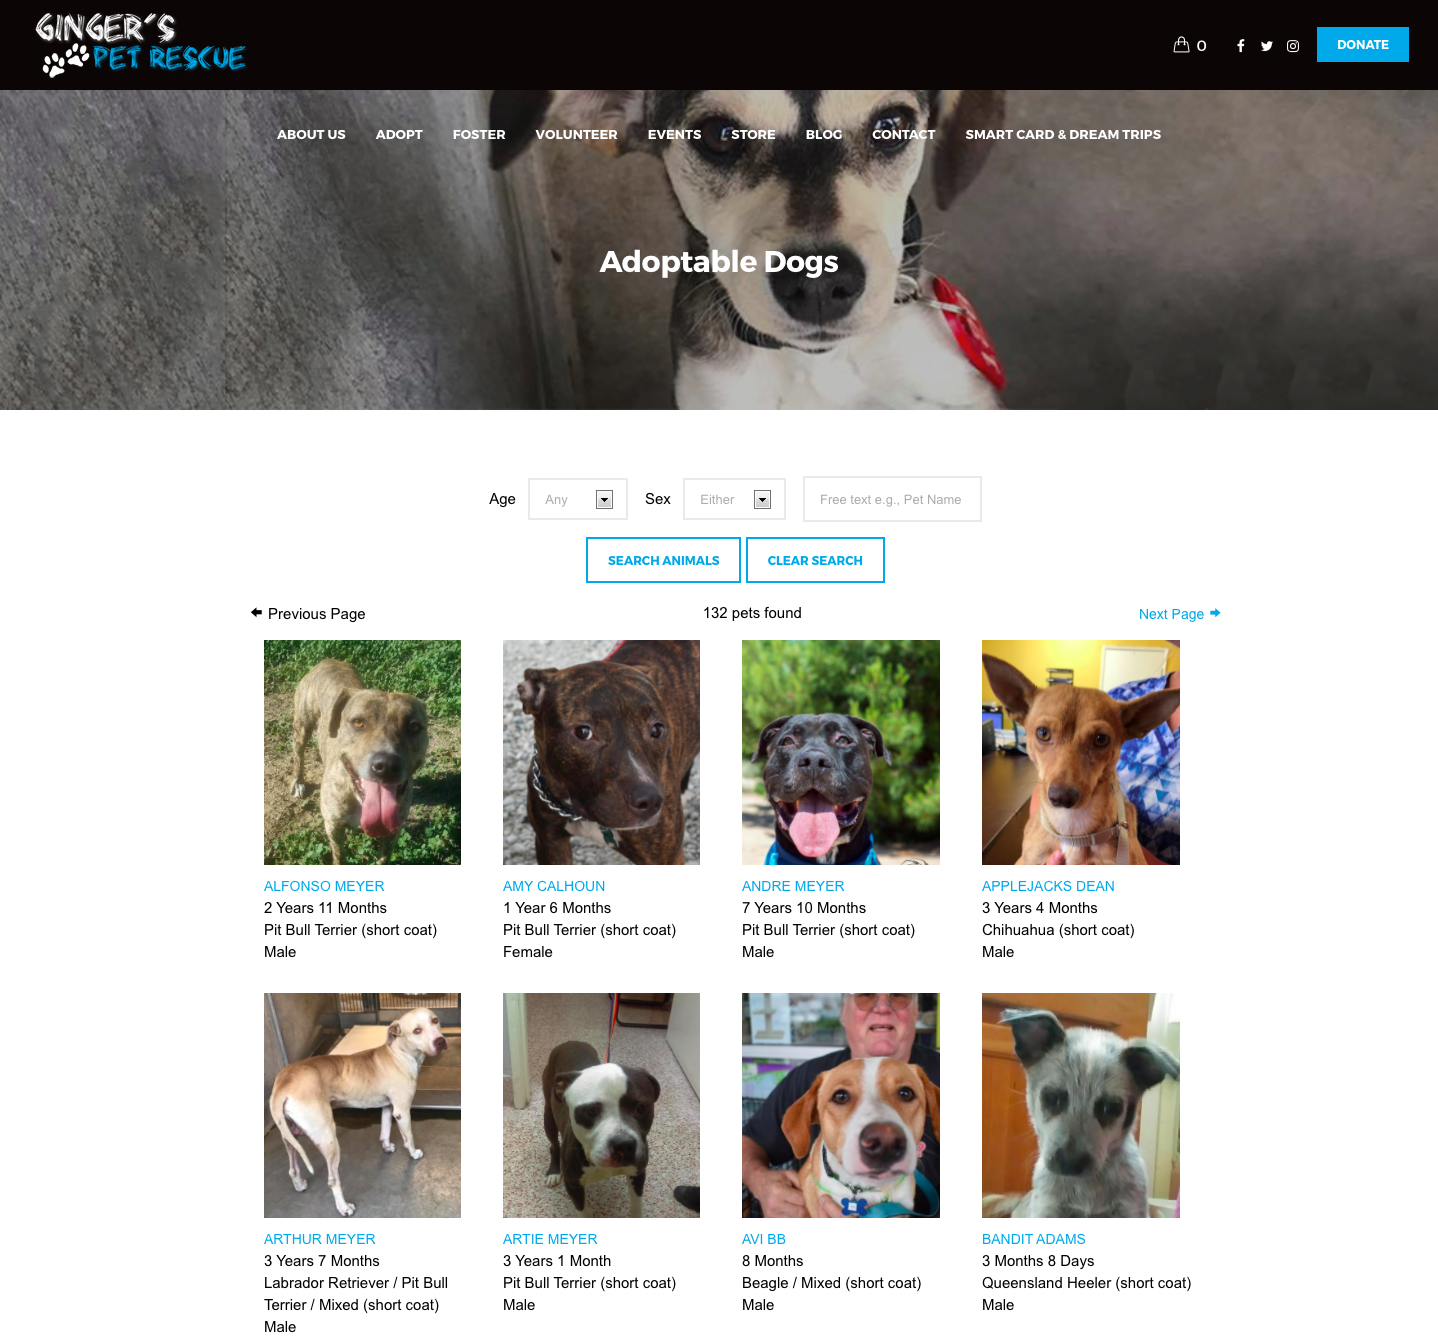 screencapture-gingerspetrescue-org-adoptable-dogs-2018-03-16-13_40_09.png